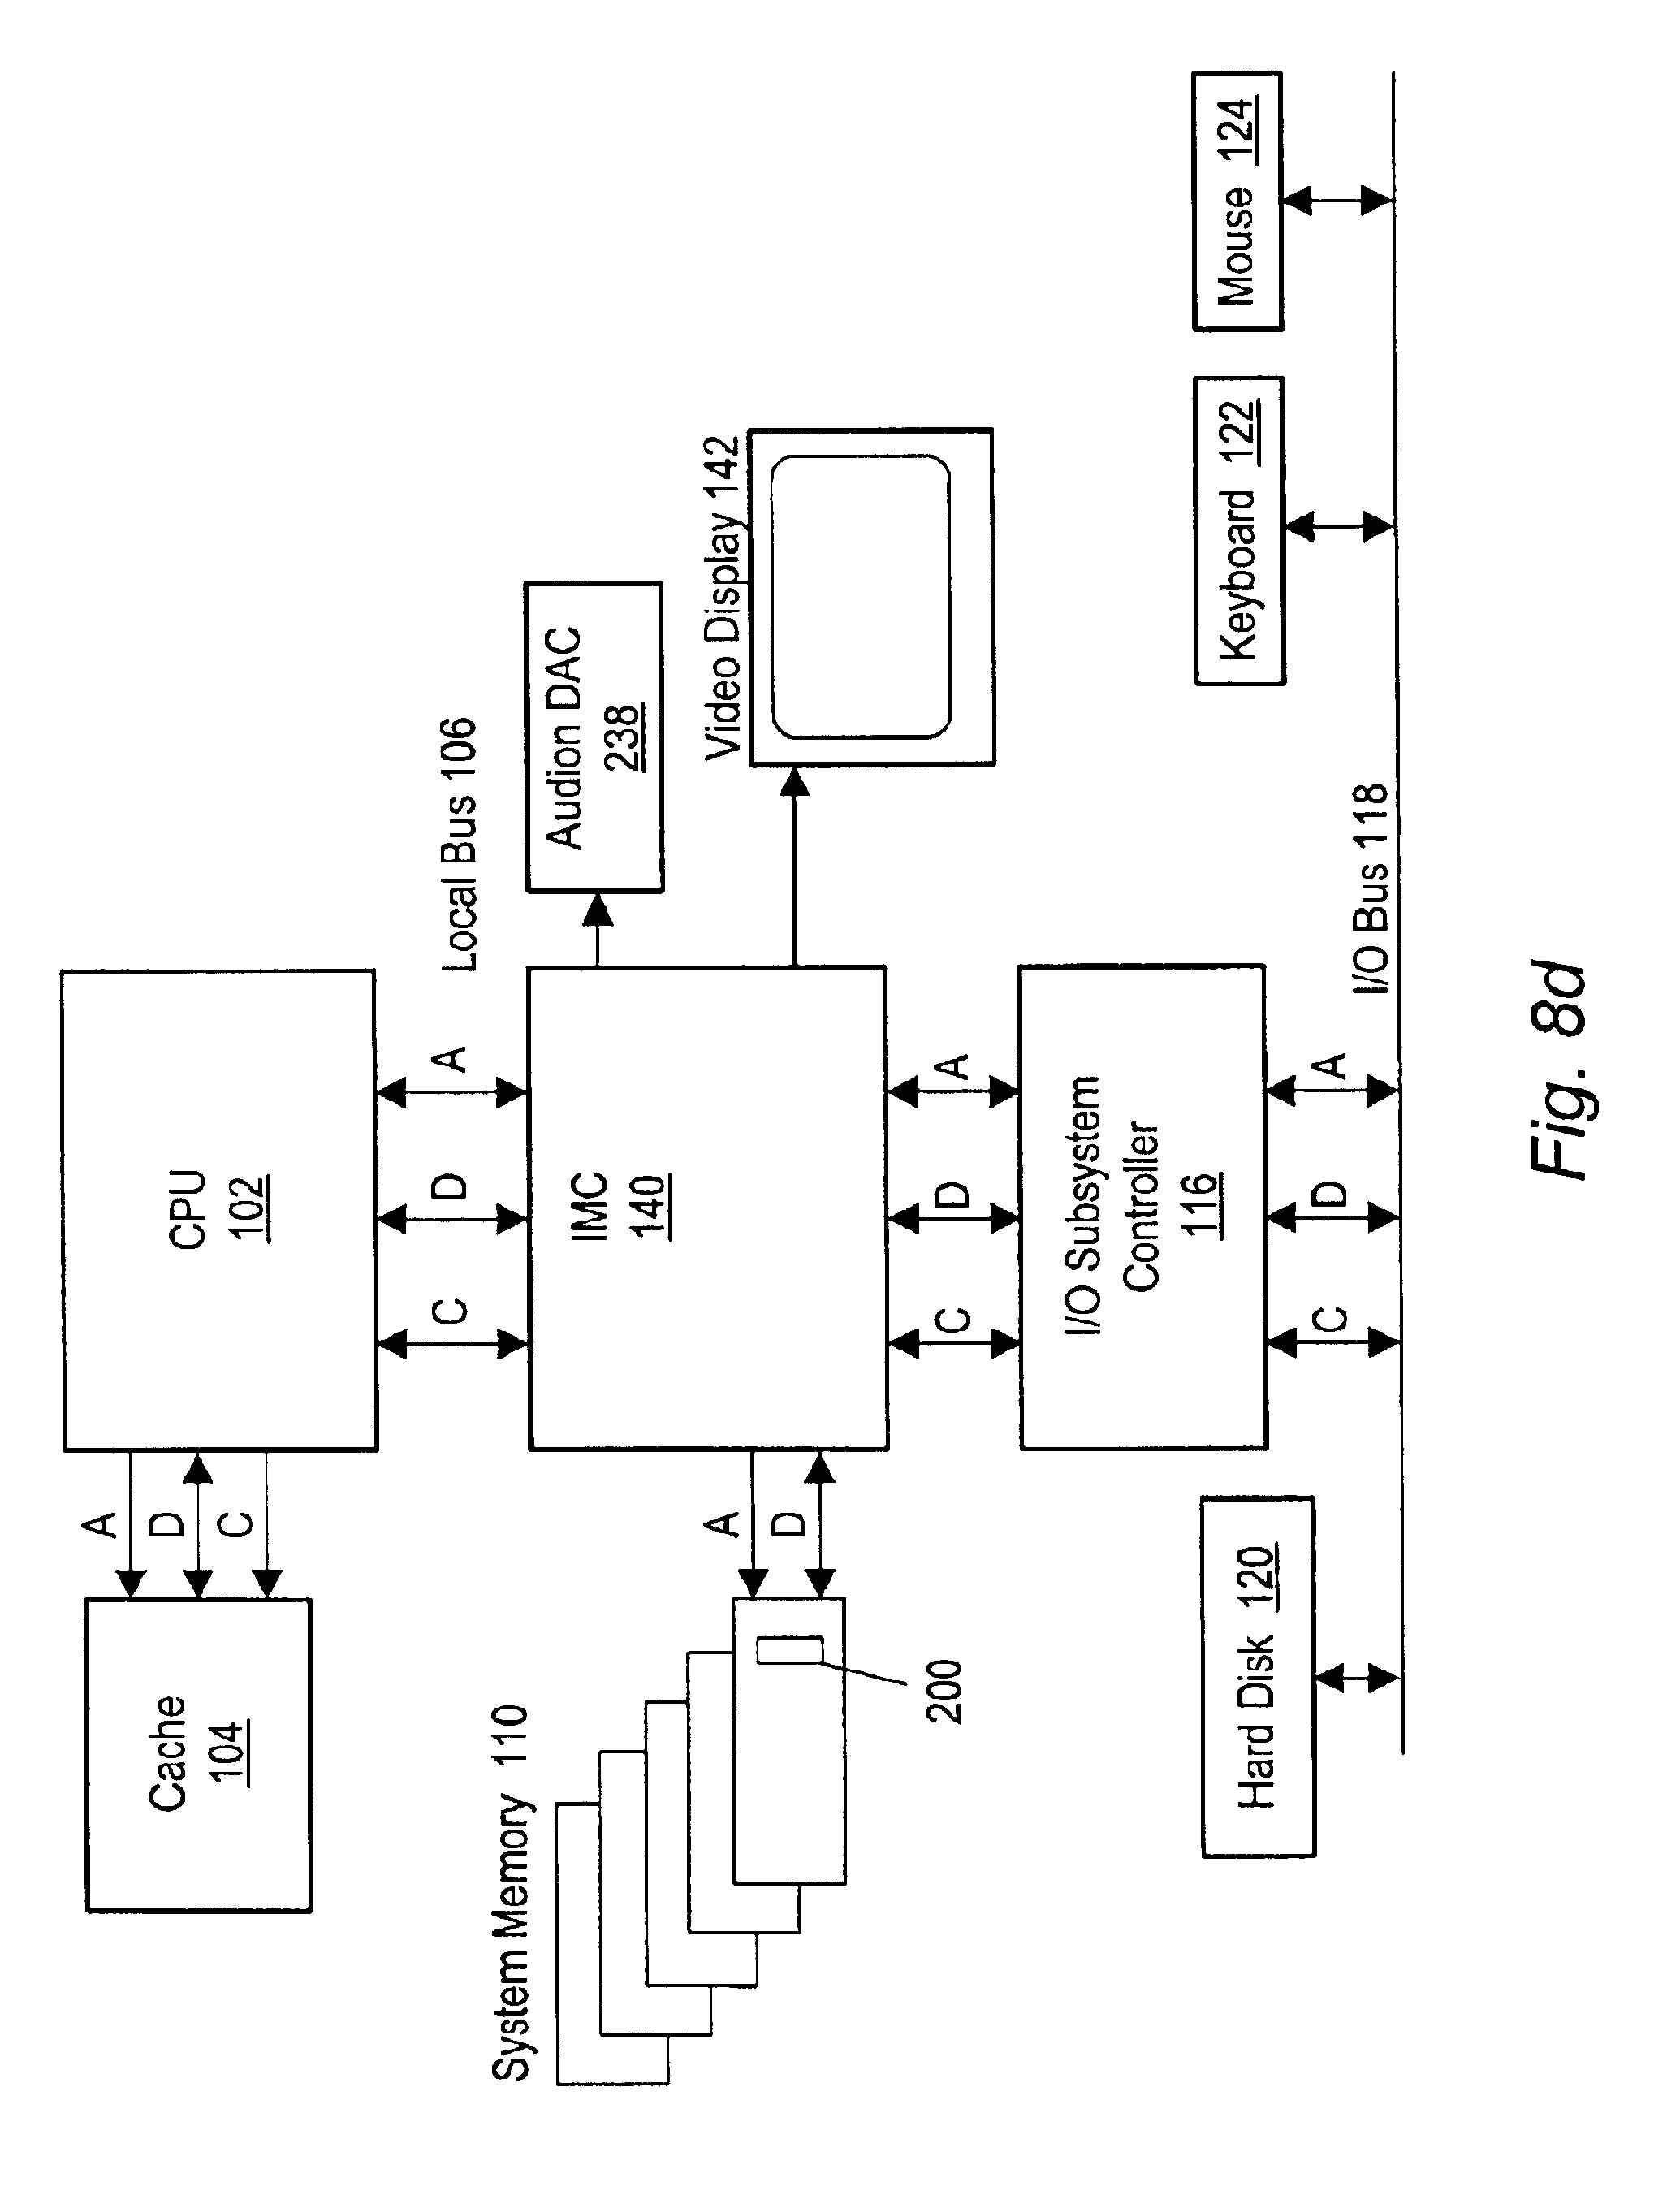 patent us6885319 system and method for generating